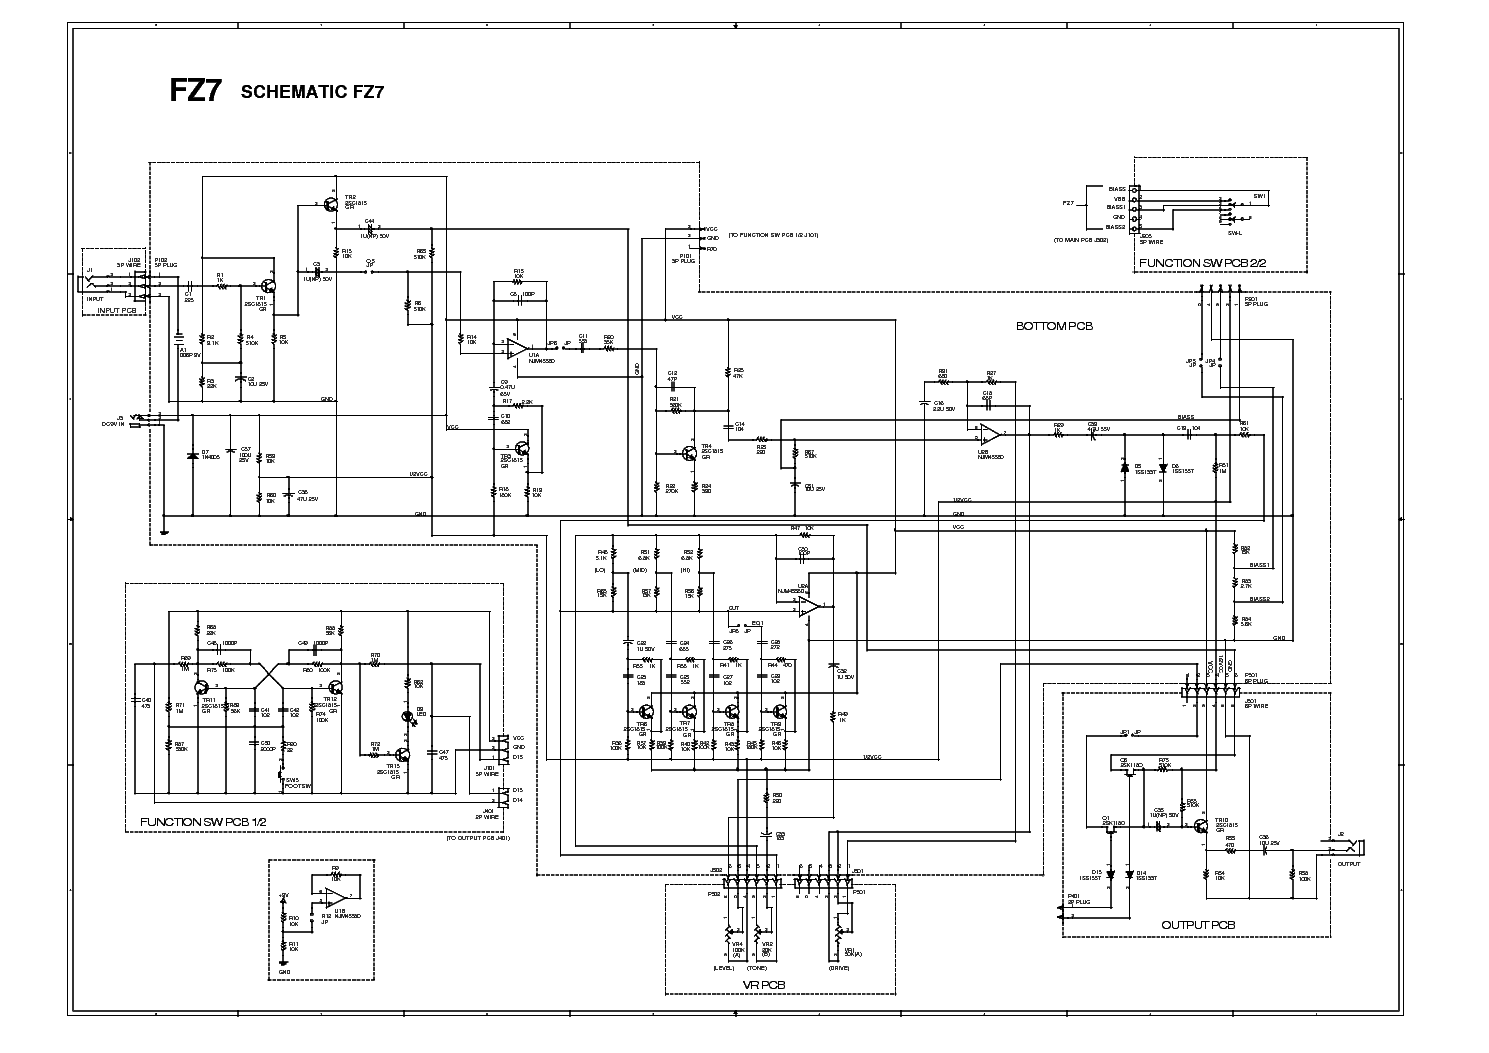 clone 'Damage' function of the Ibanez FZ7 Fuzz